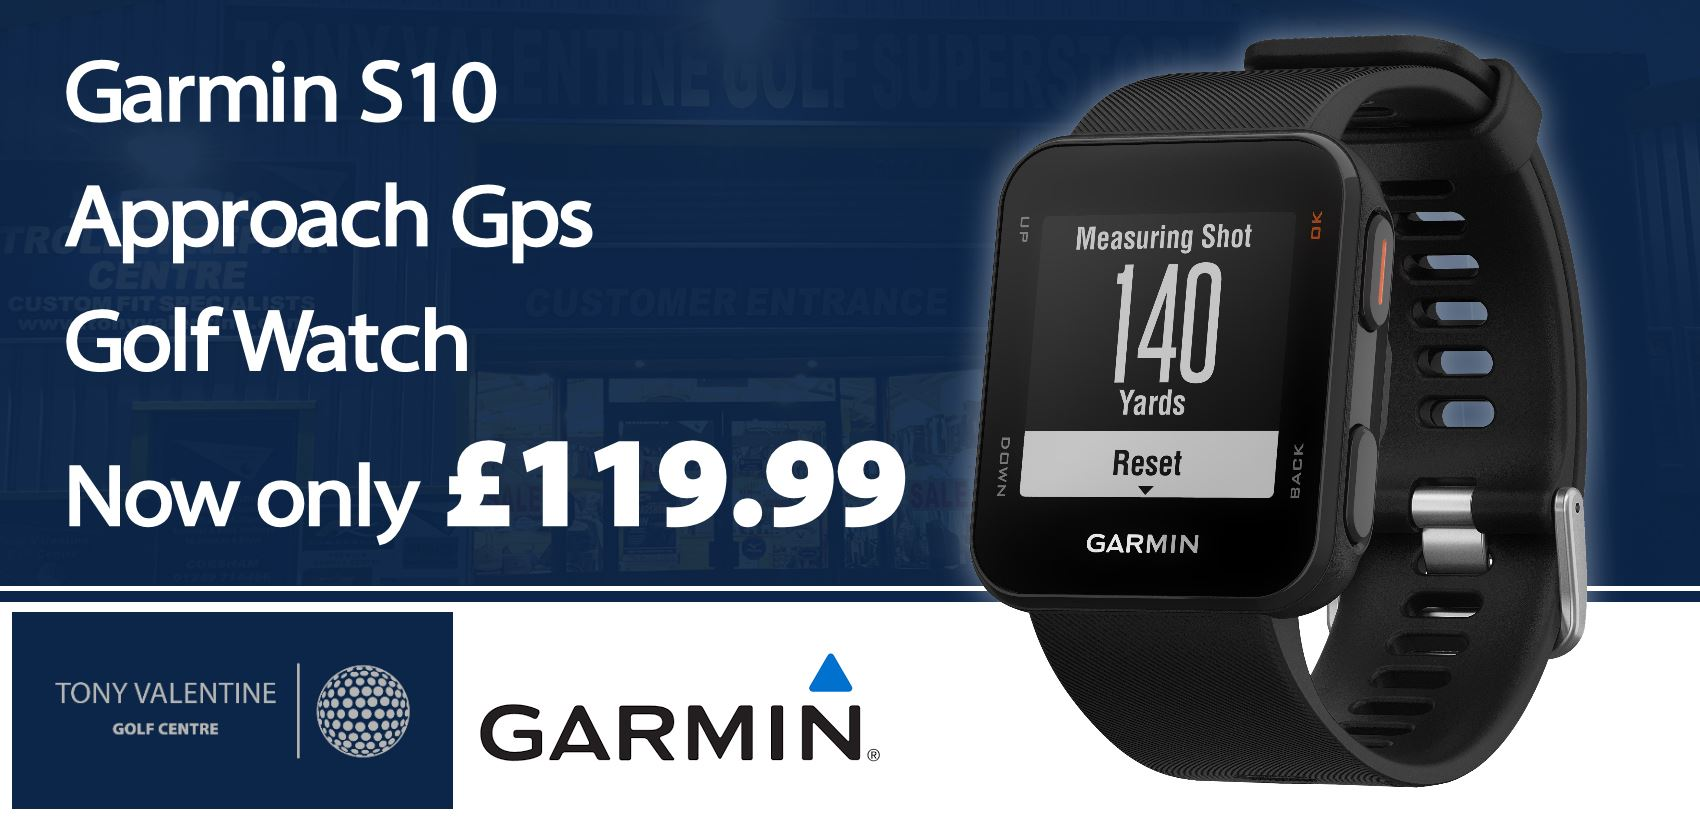 Garmin S10 Watch £119.99